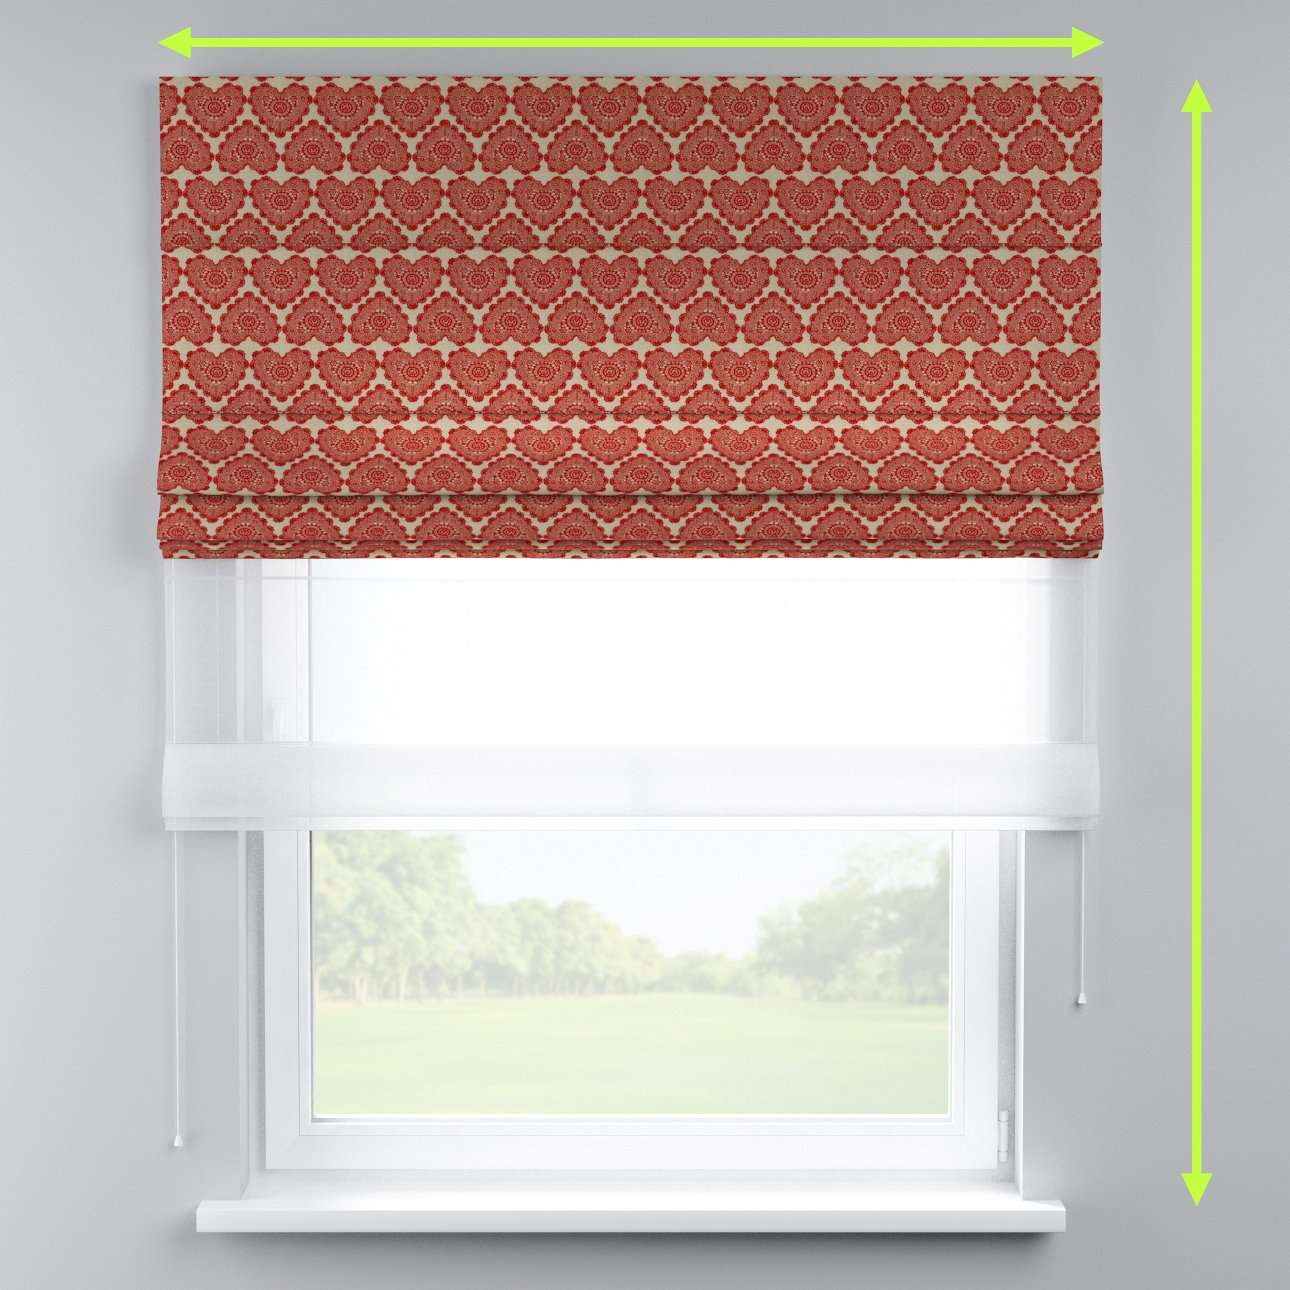 Voile and fabric roman blind (DUO II) in collection Freestyle, fabric: 629-17